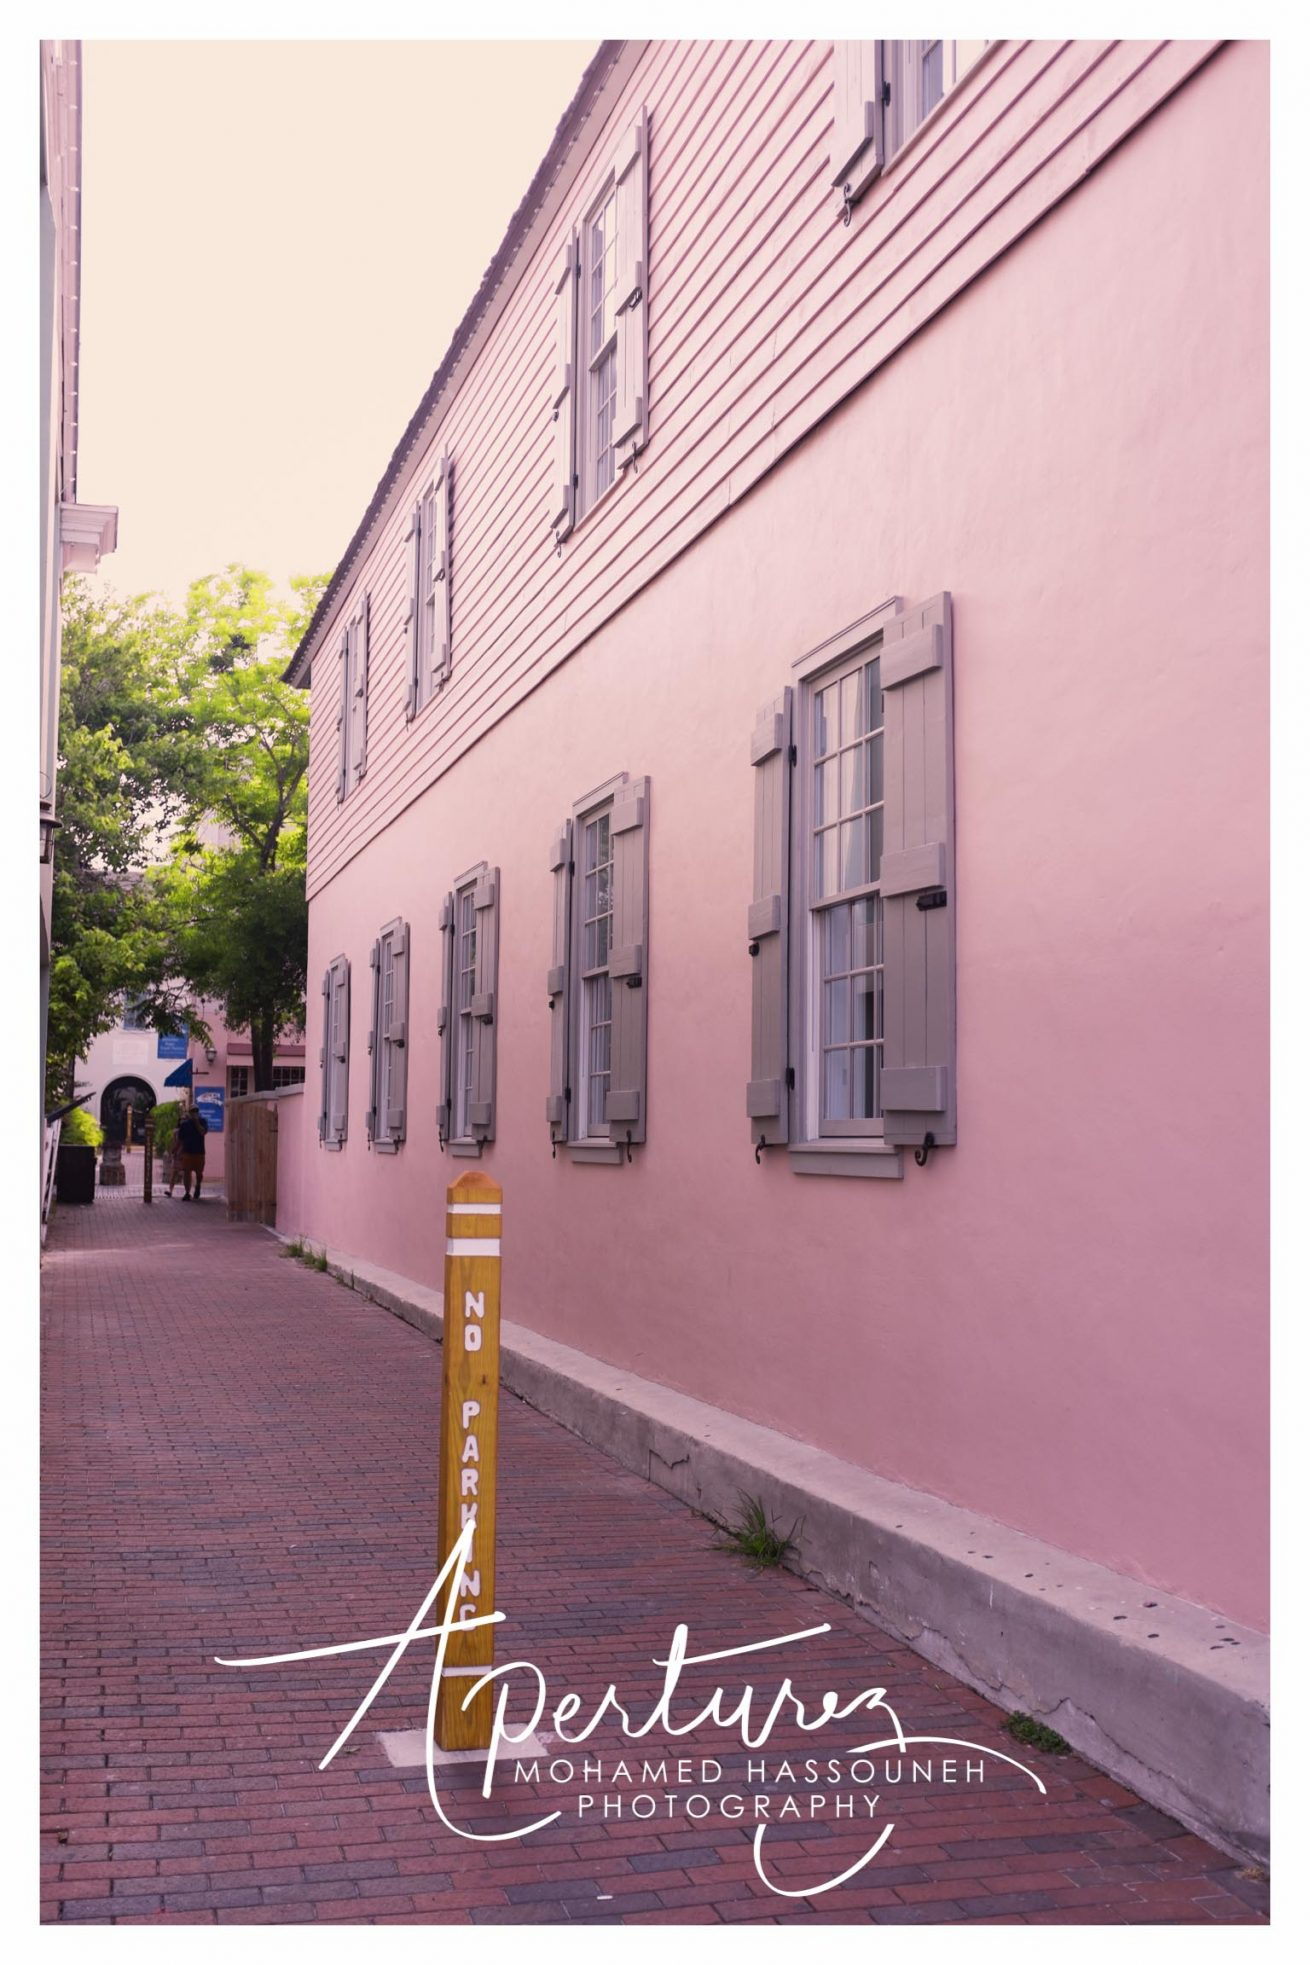 The Pink Alley